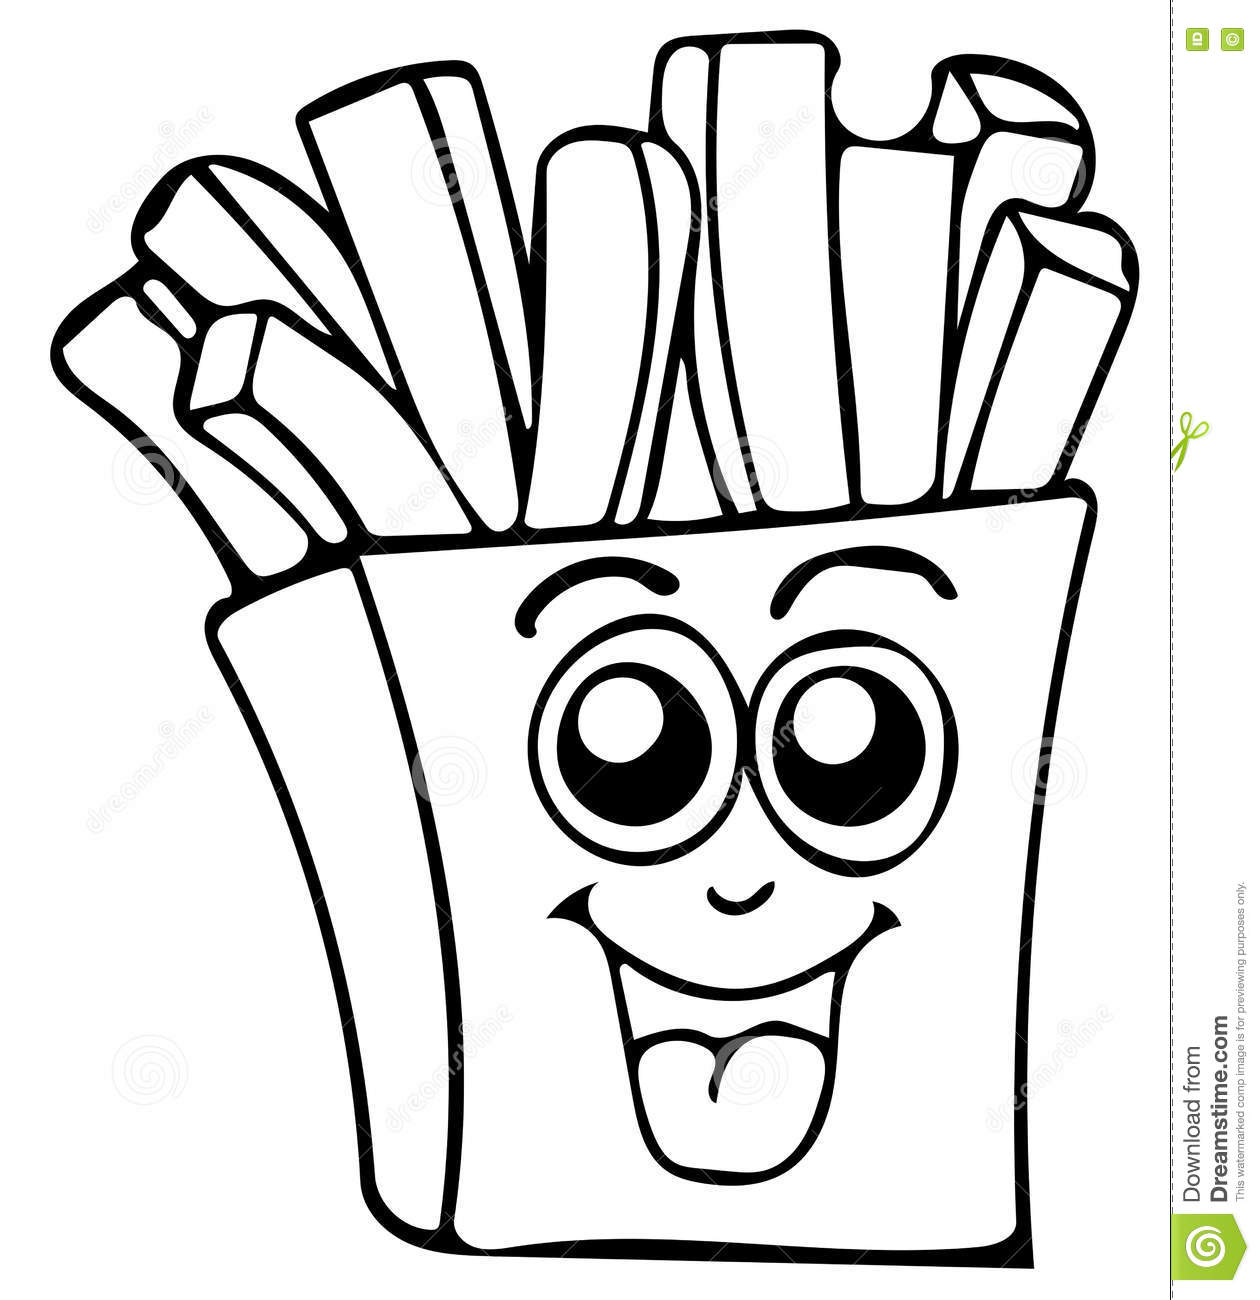 french fries coloring pages - photo#35